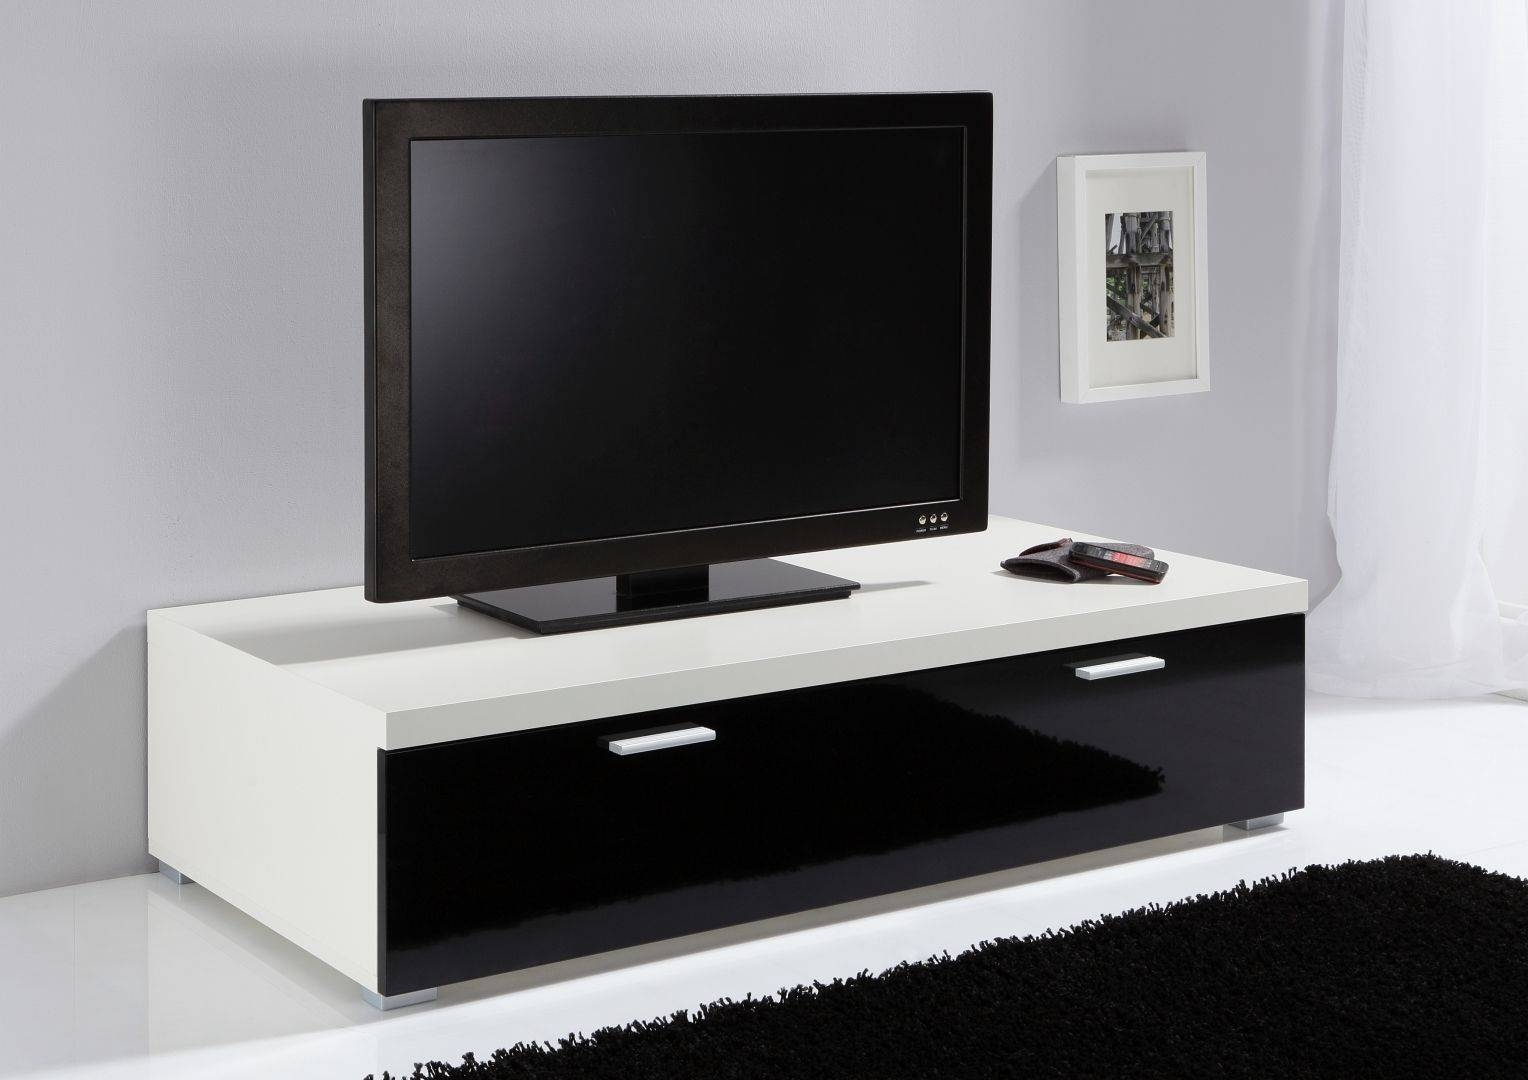 Modanuvo Low Tv Unit, Tv Cabinet, Tv Stand Off White & Black High inside Low Tv Units (Image 13 of 15)